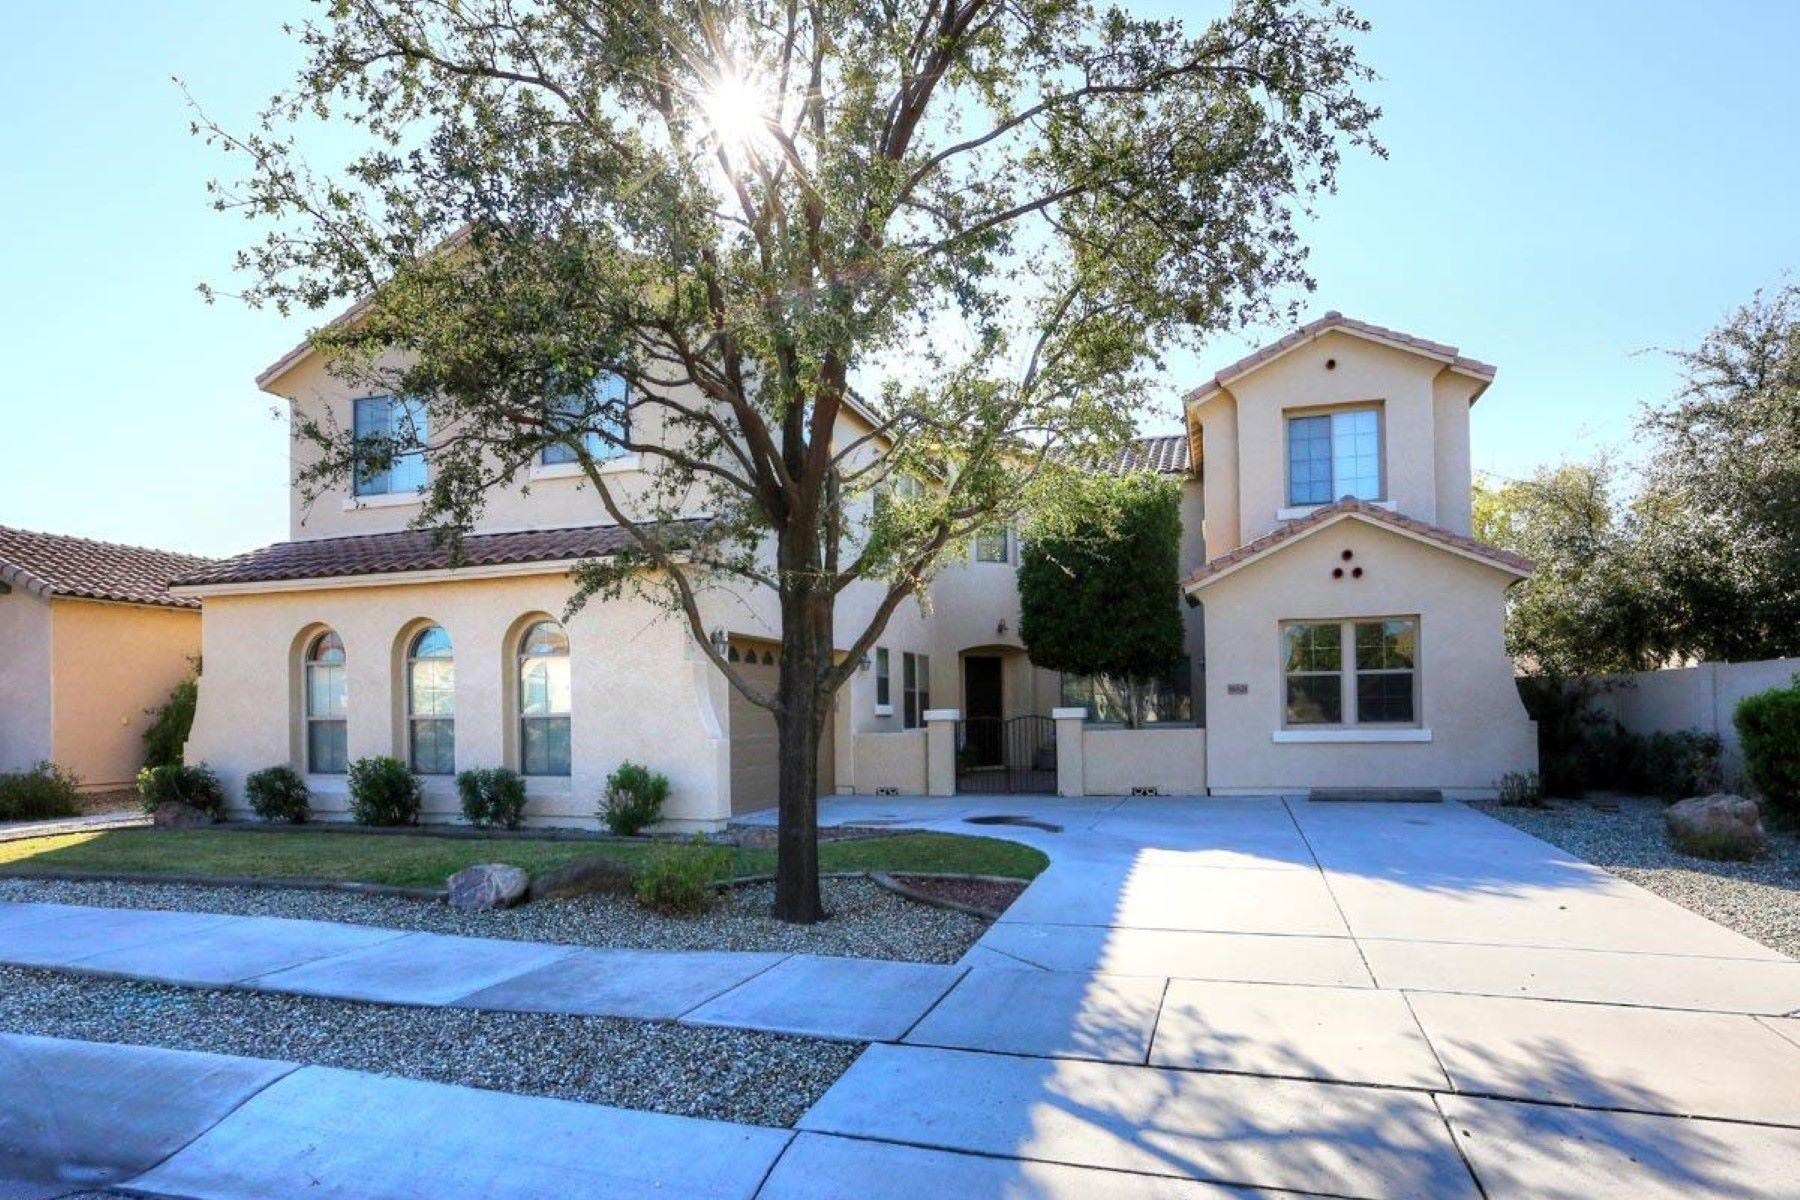 Single Family Homes for Active at Canyon Trails 16821 W Hilton Ave Goodyear, Arizona 85338 United States